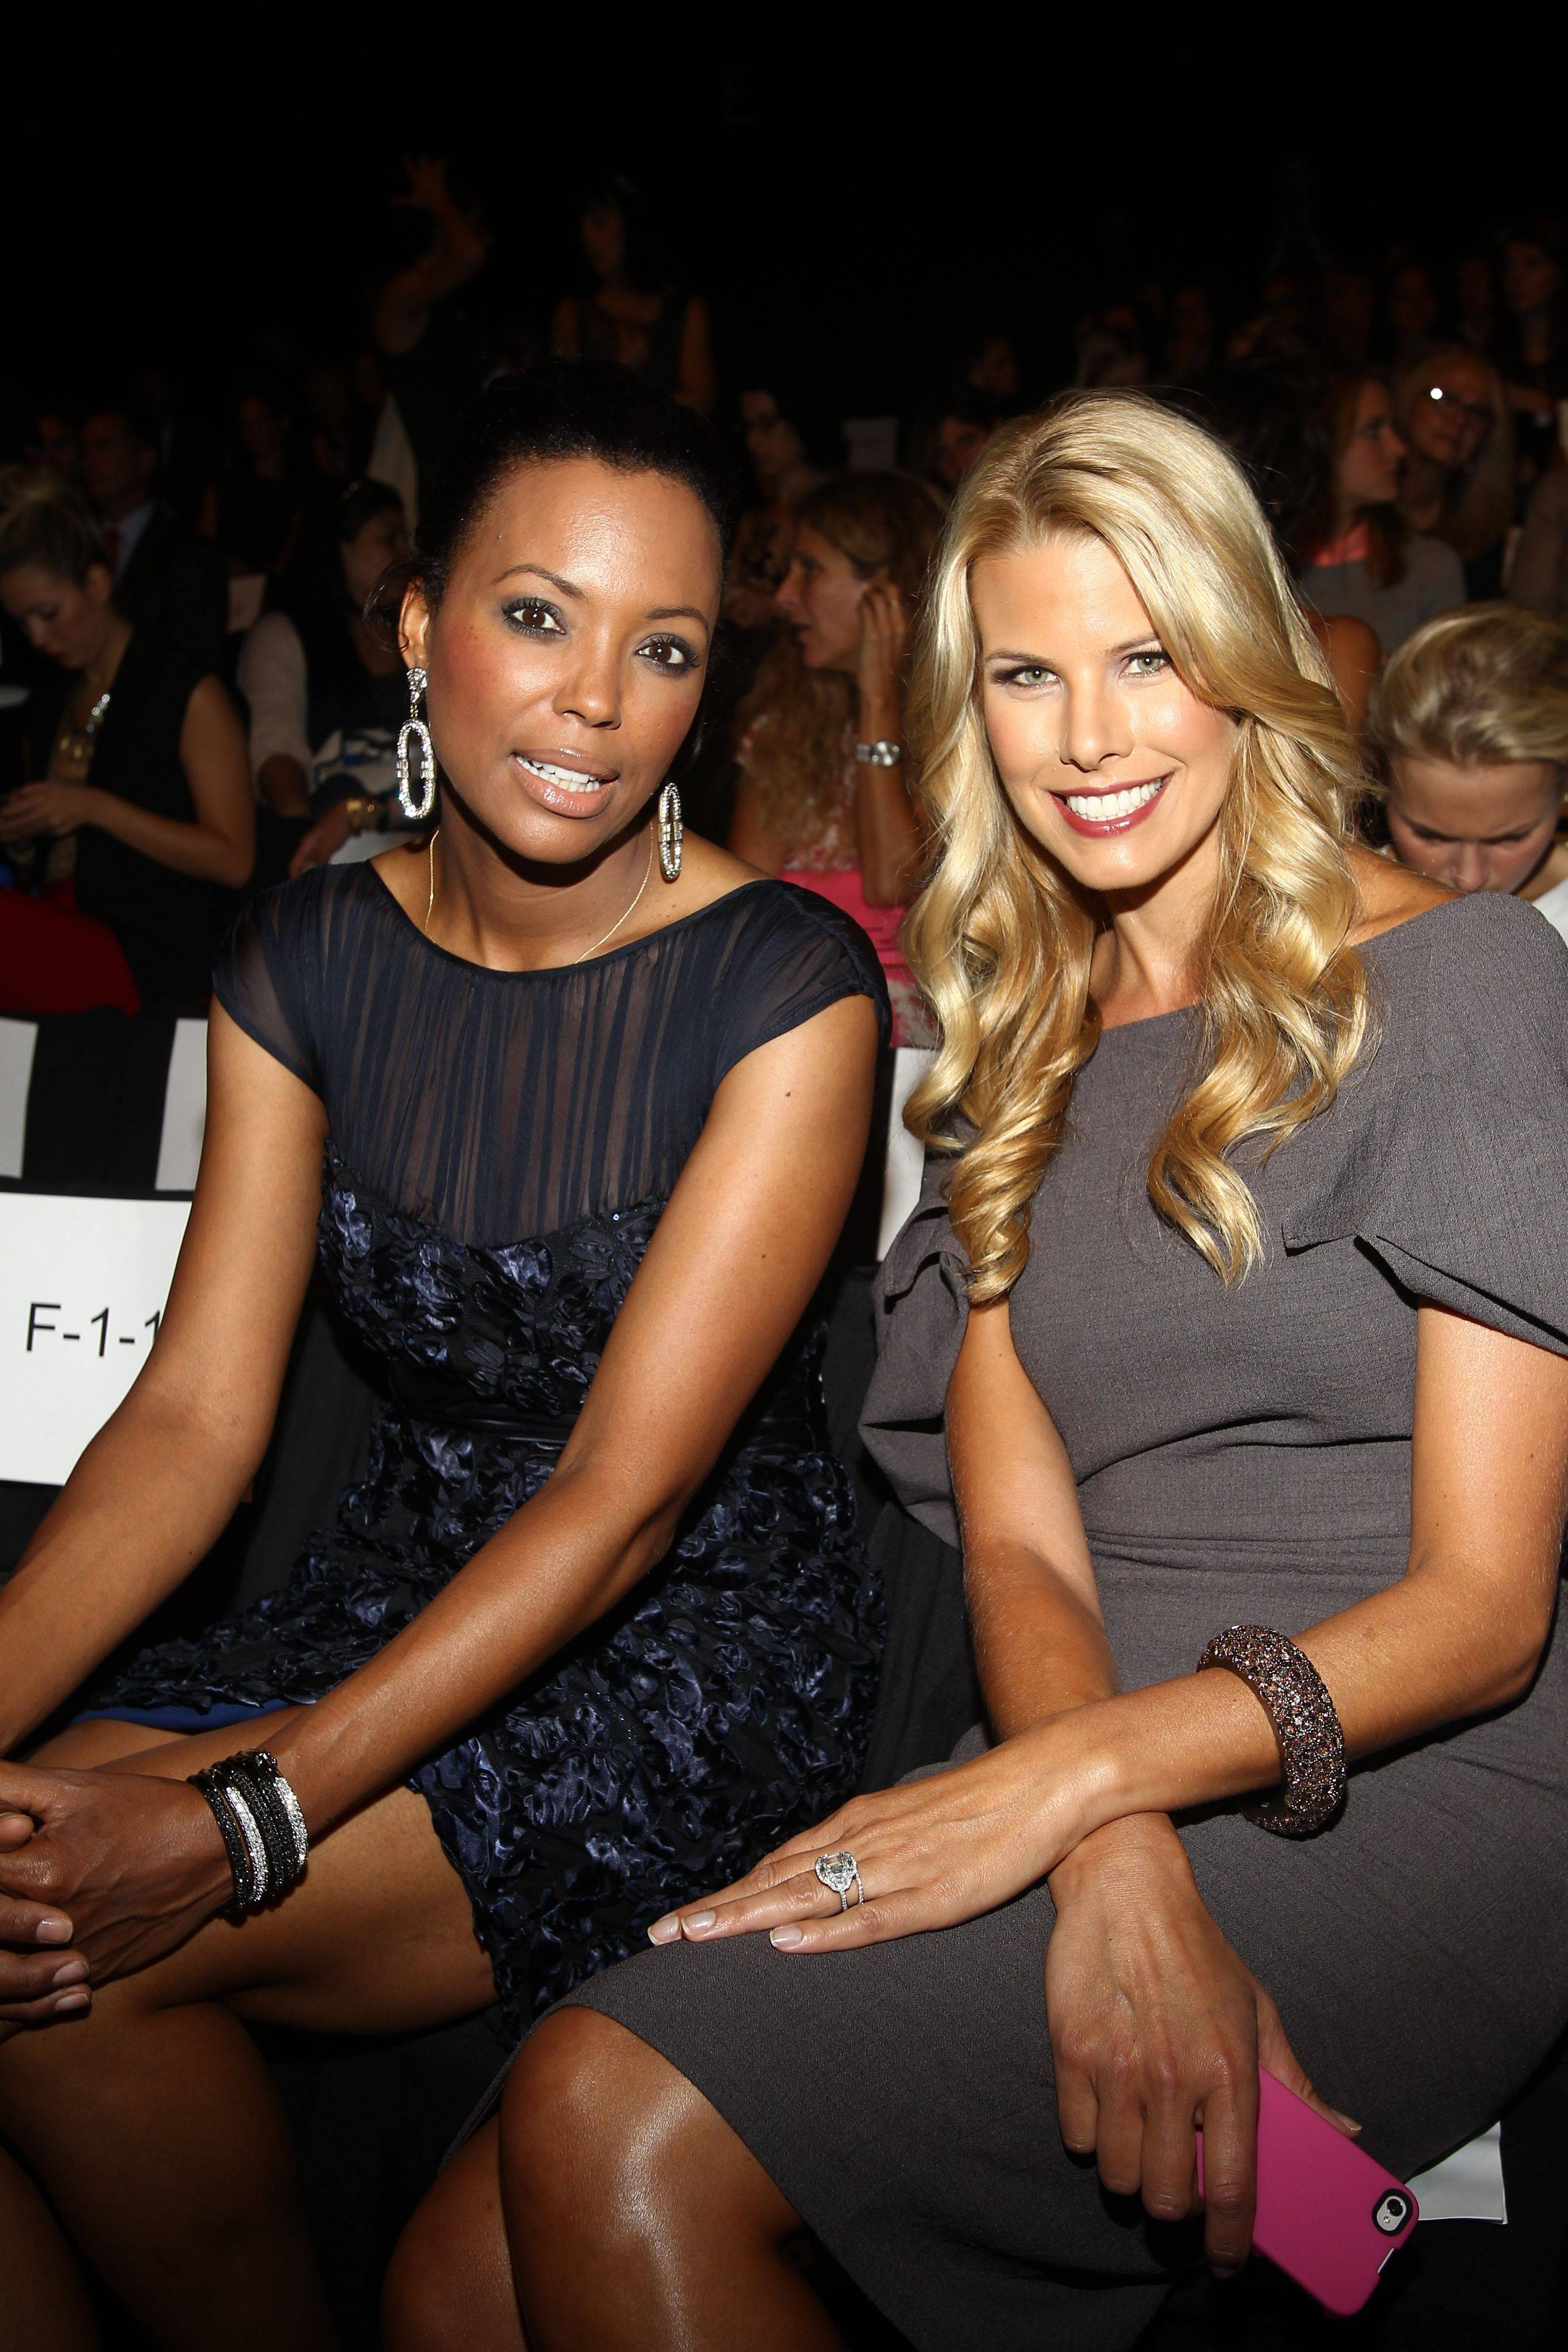 Actress Aisha Tyler, left, and Beth Ostrosky Stern attends the Badgley Mischka 2012 Spring collection during Mercedes Benz Fashion Week at Lincoln Center on Tuesday, Sept. 13, 2011.